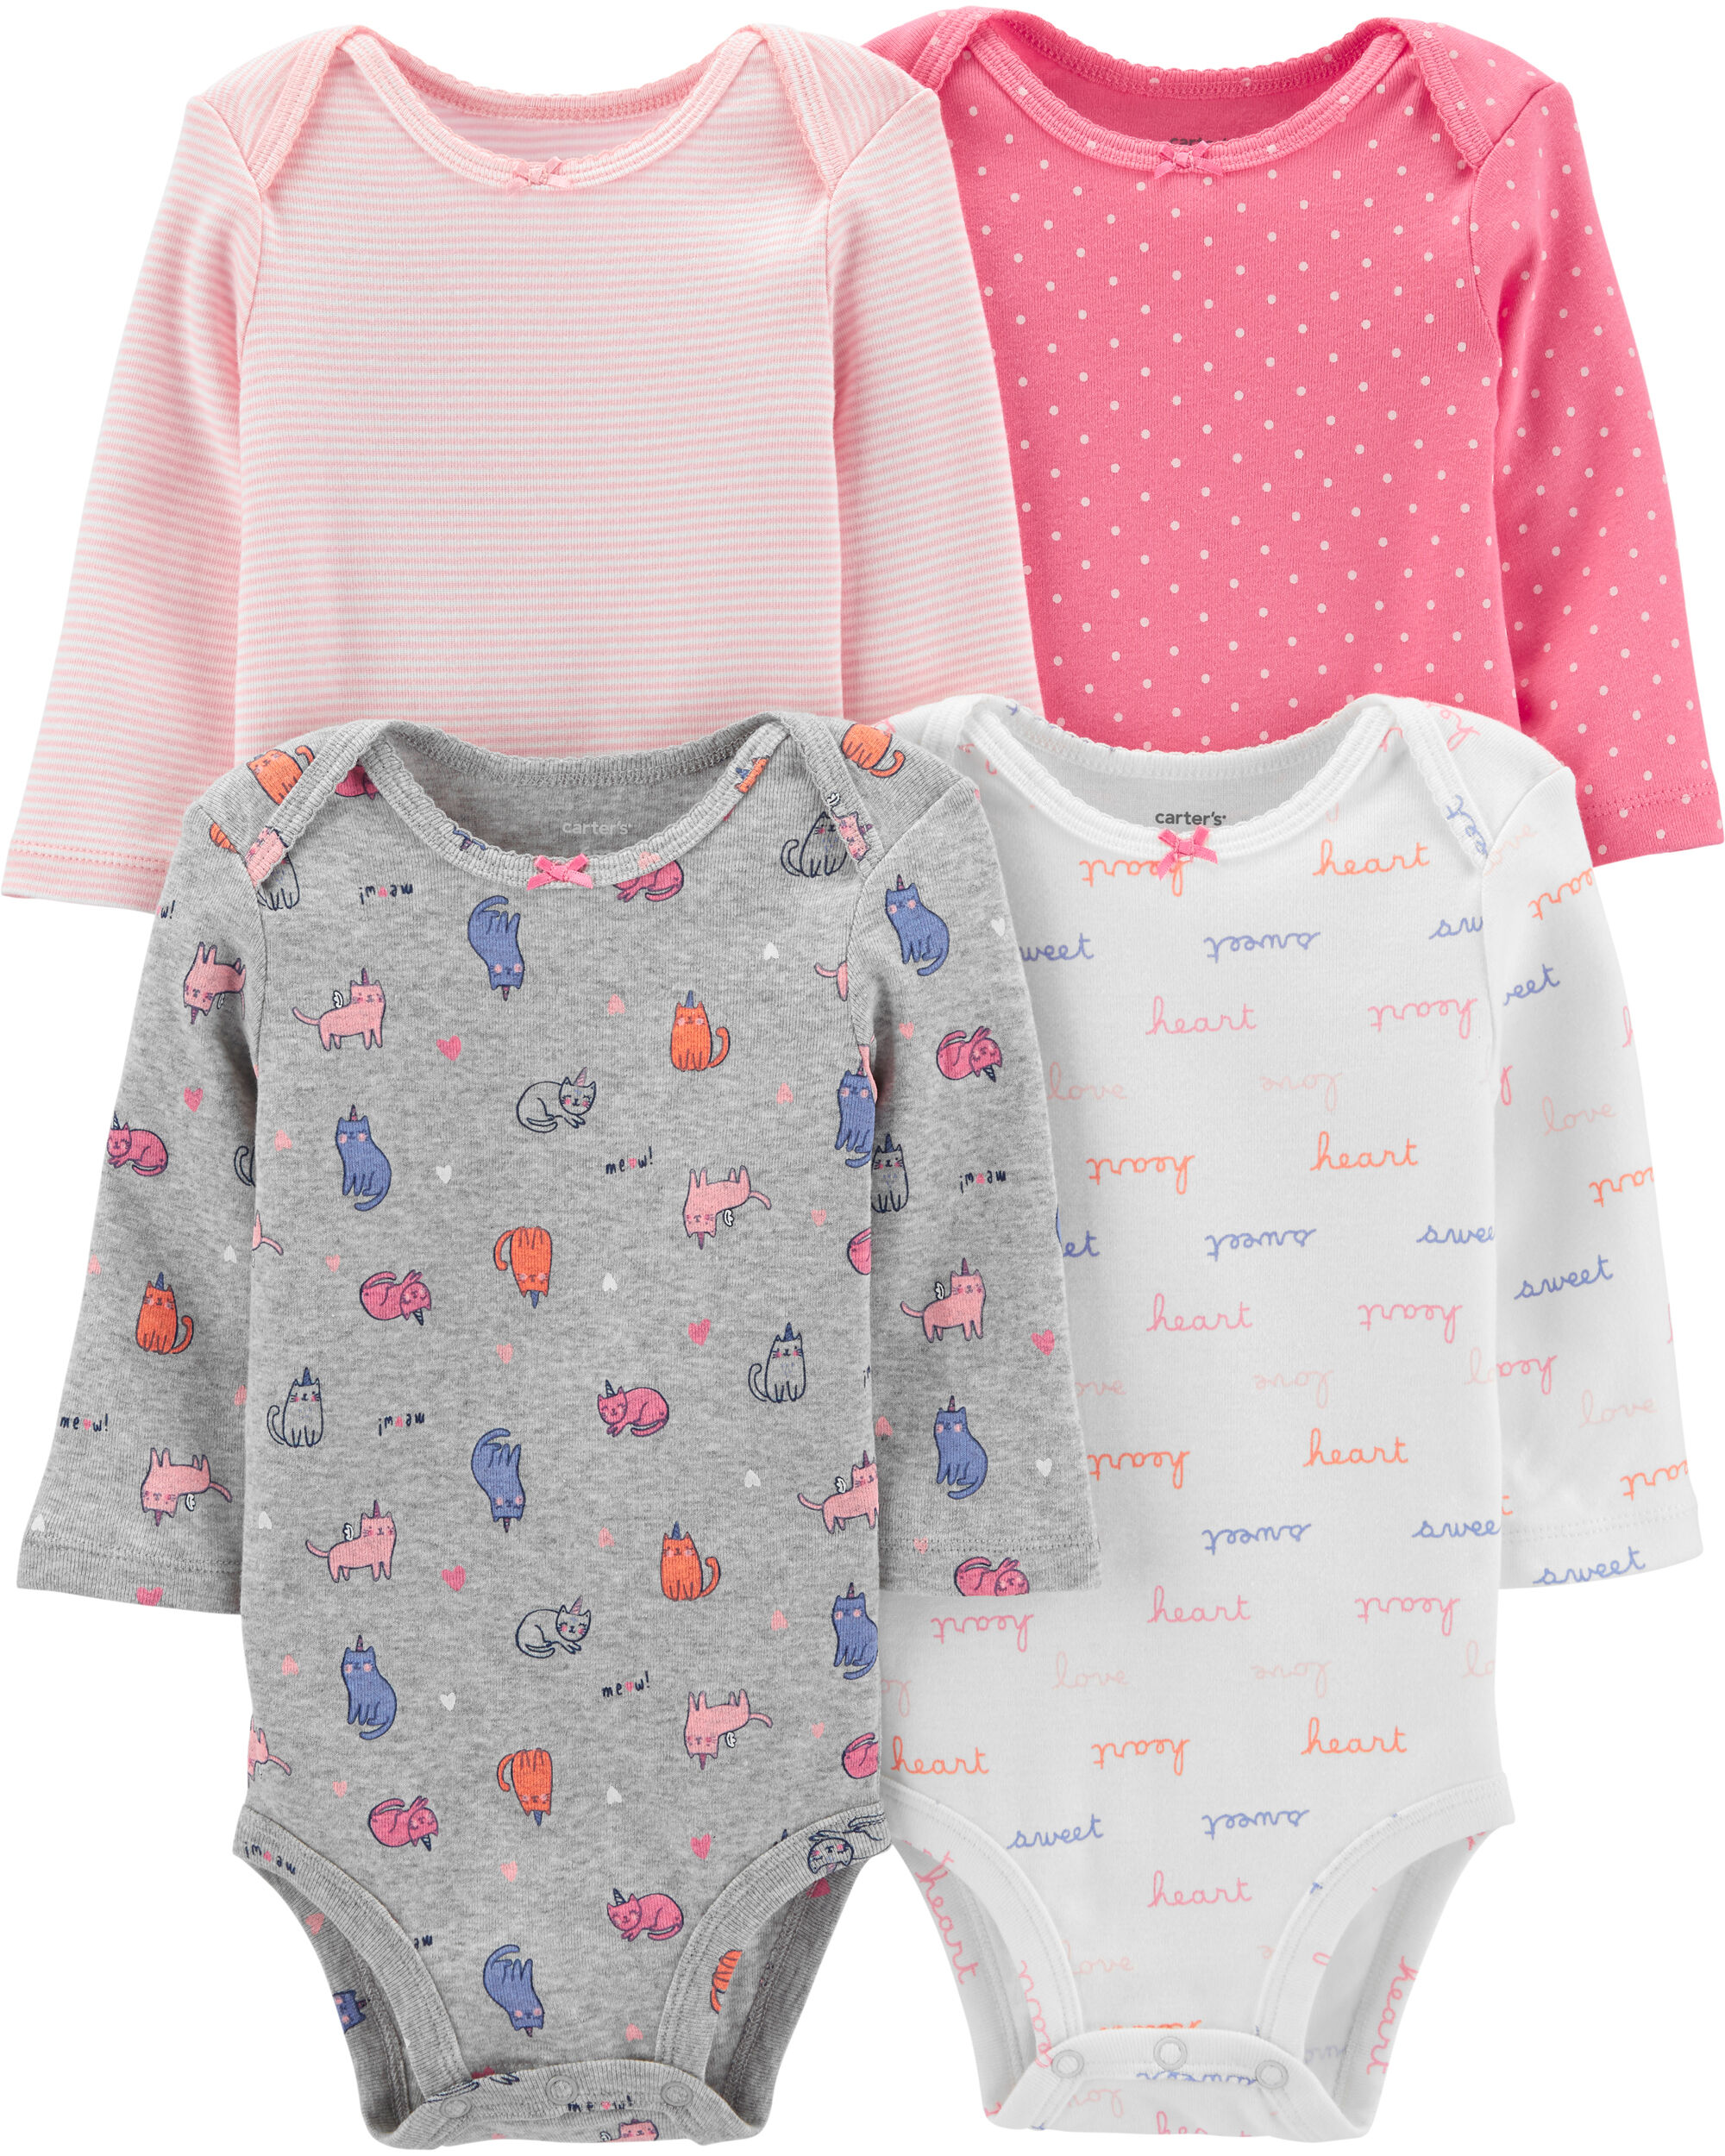 4-Pack Cats Original Bodysuits